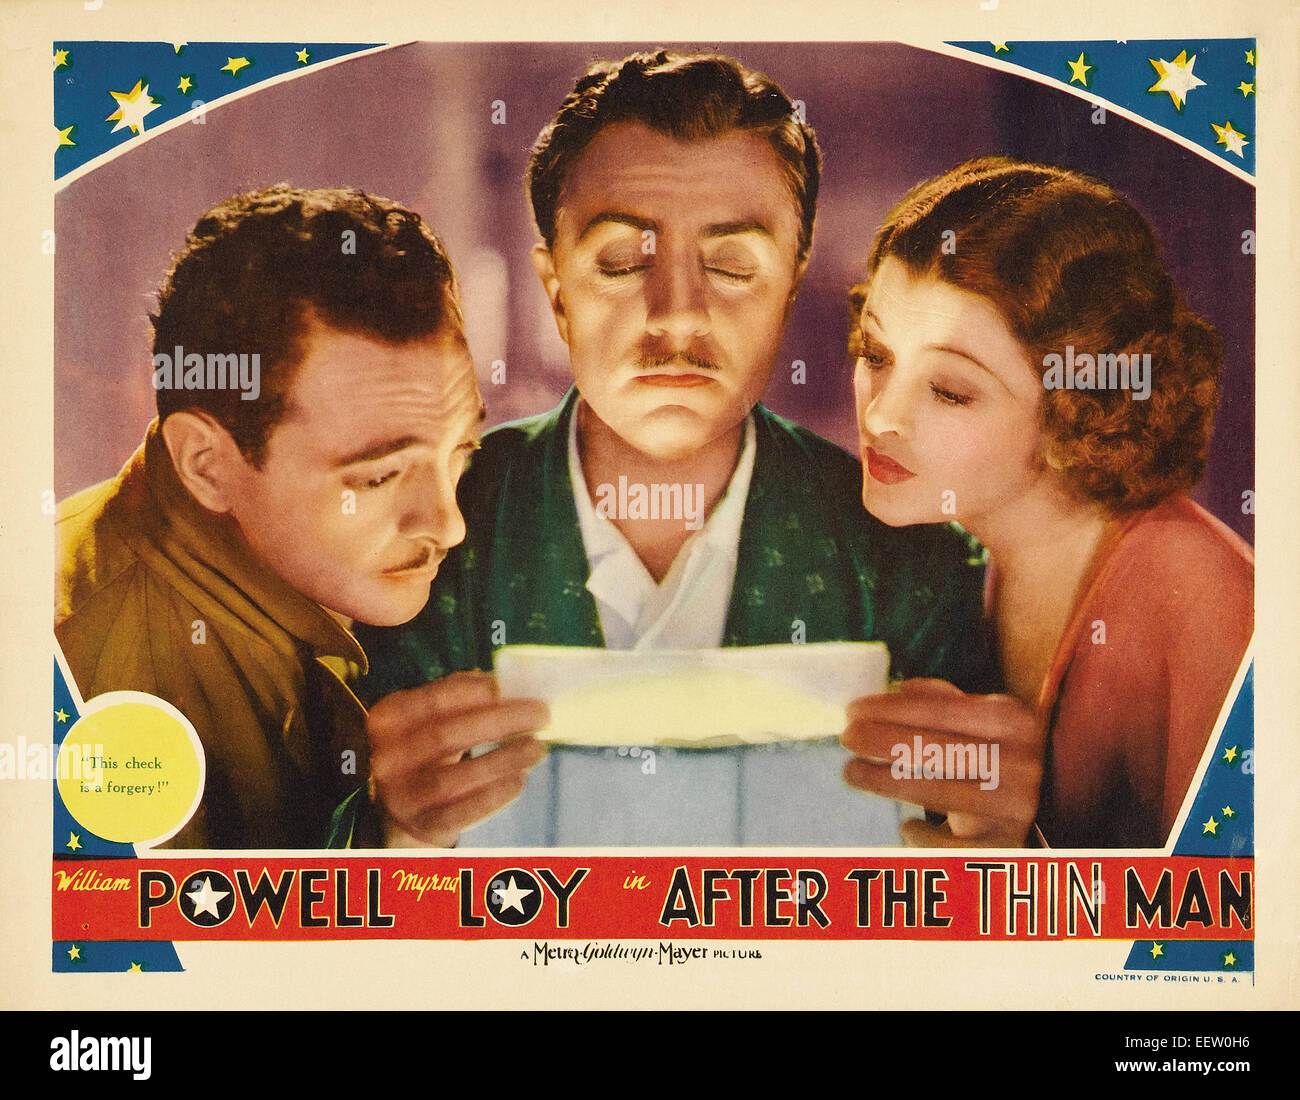 after the Thin Man - Movie Poster - Stock Image